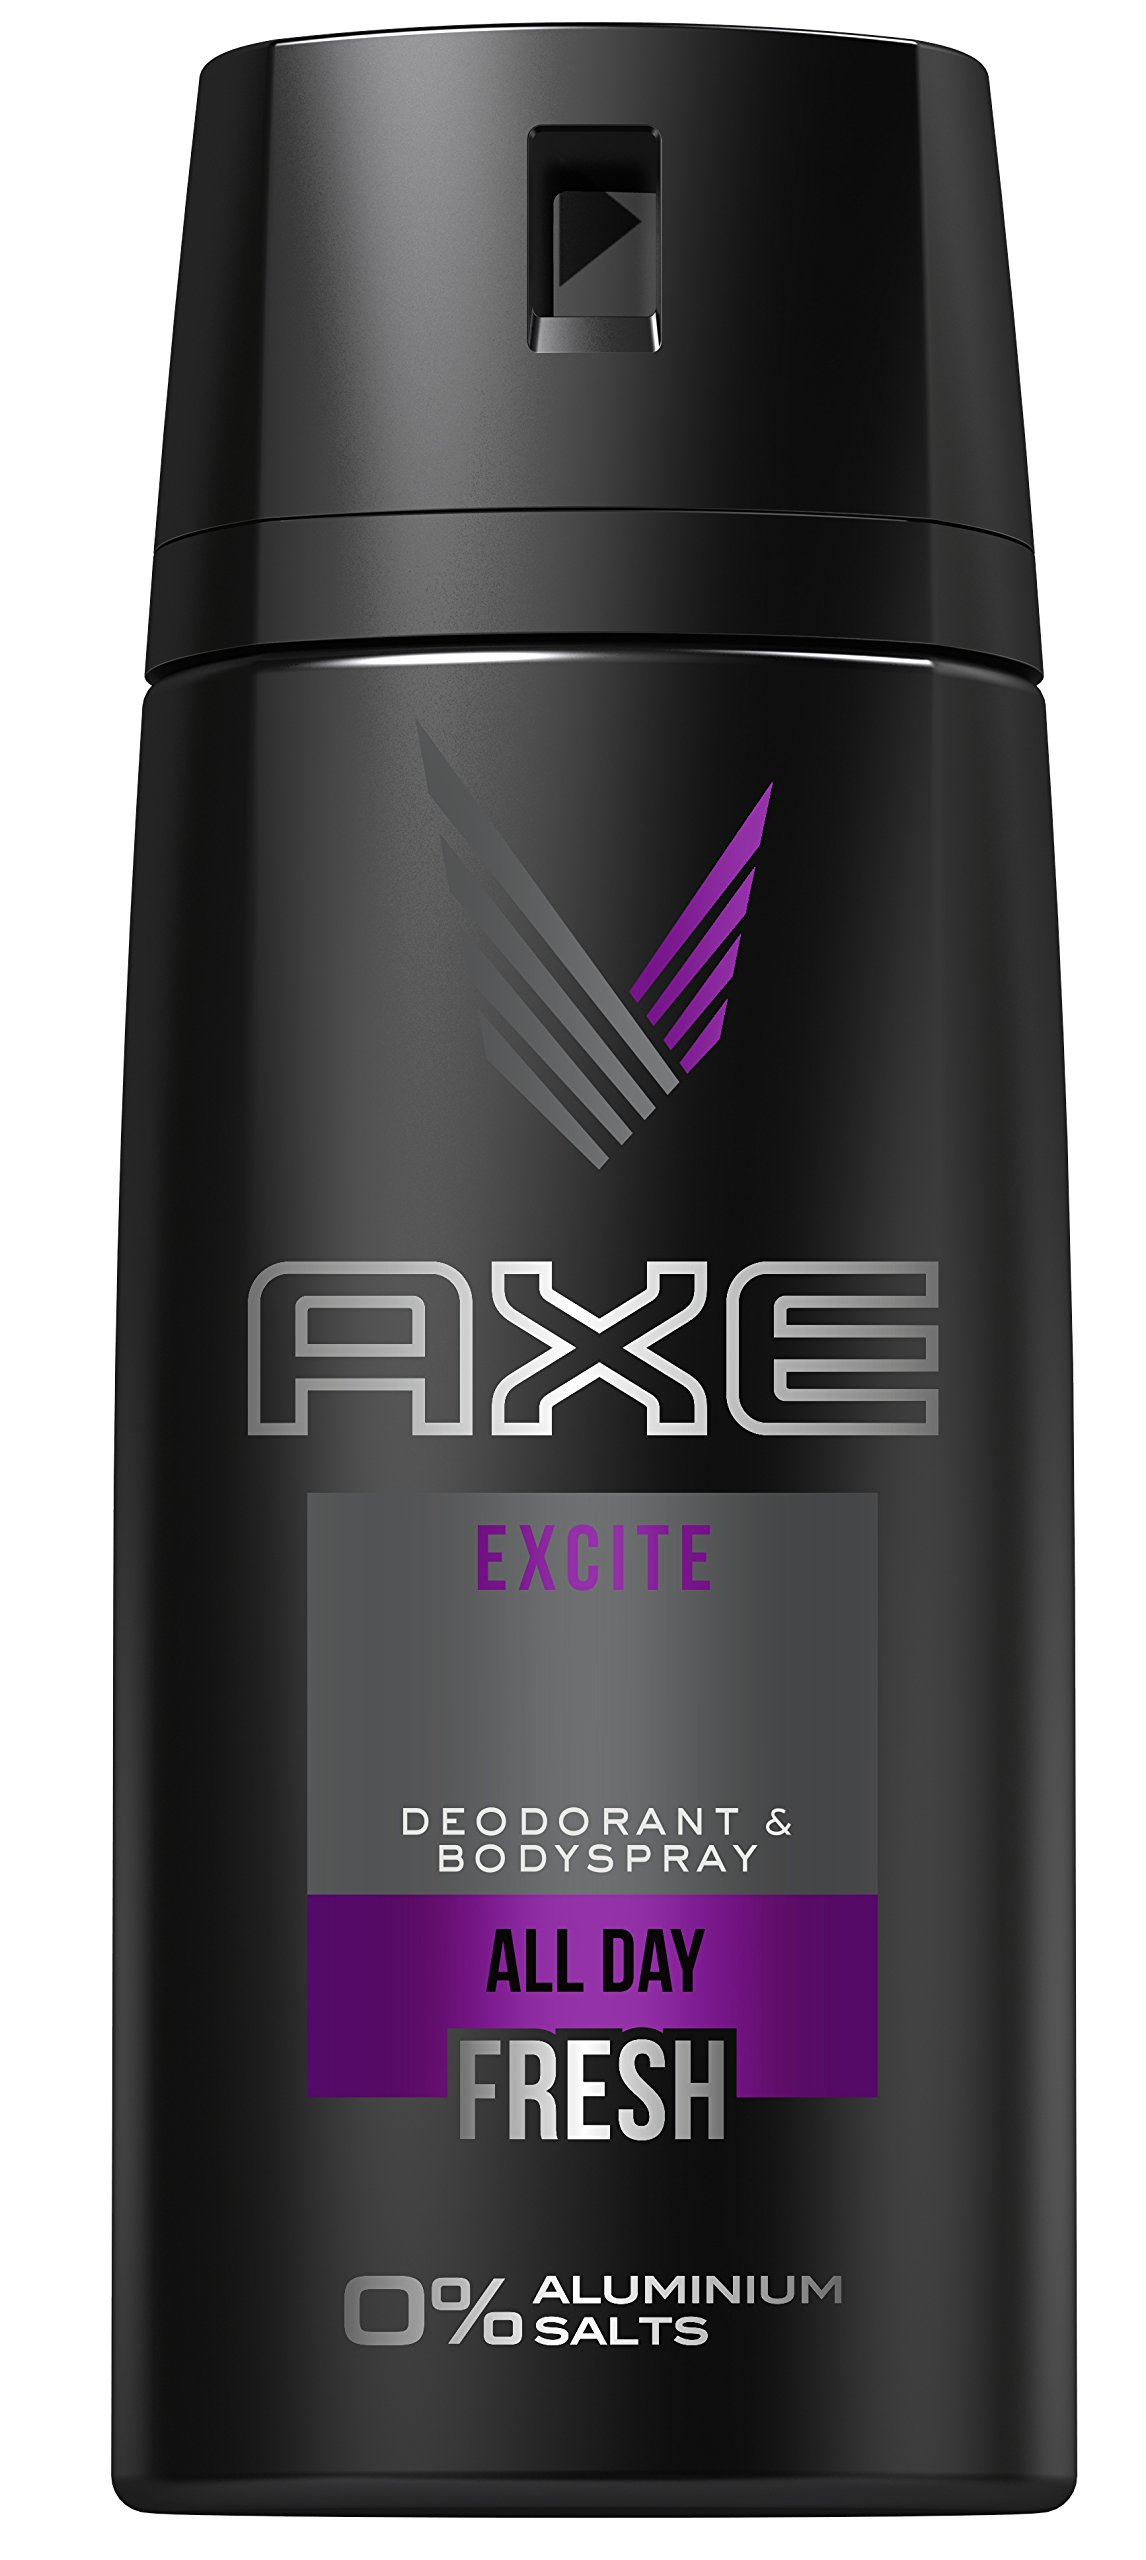 AXE Desodorante Bodyspray Refreshed